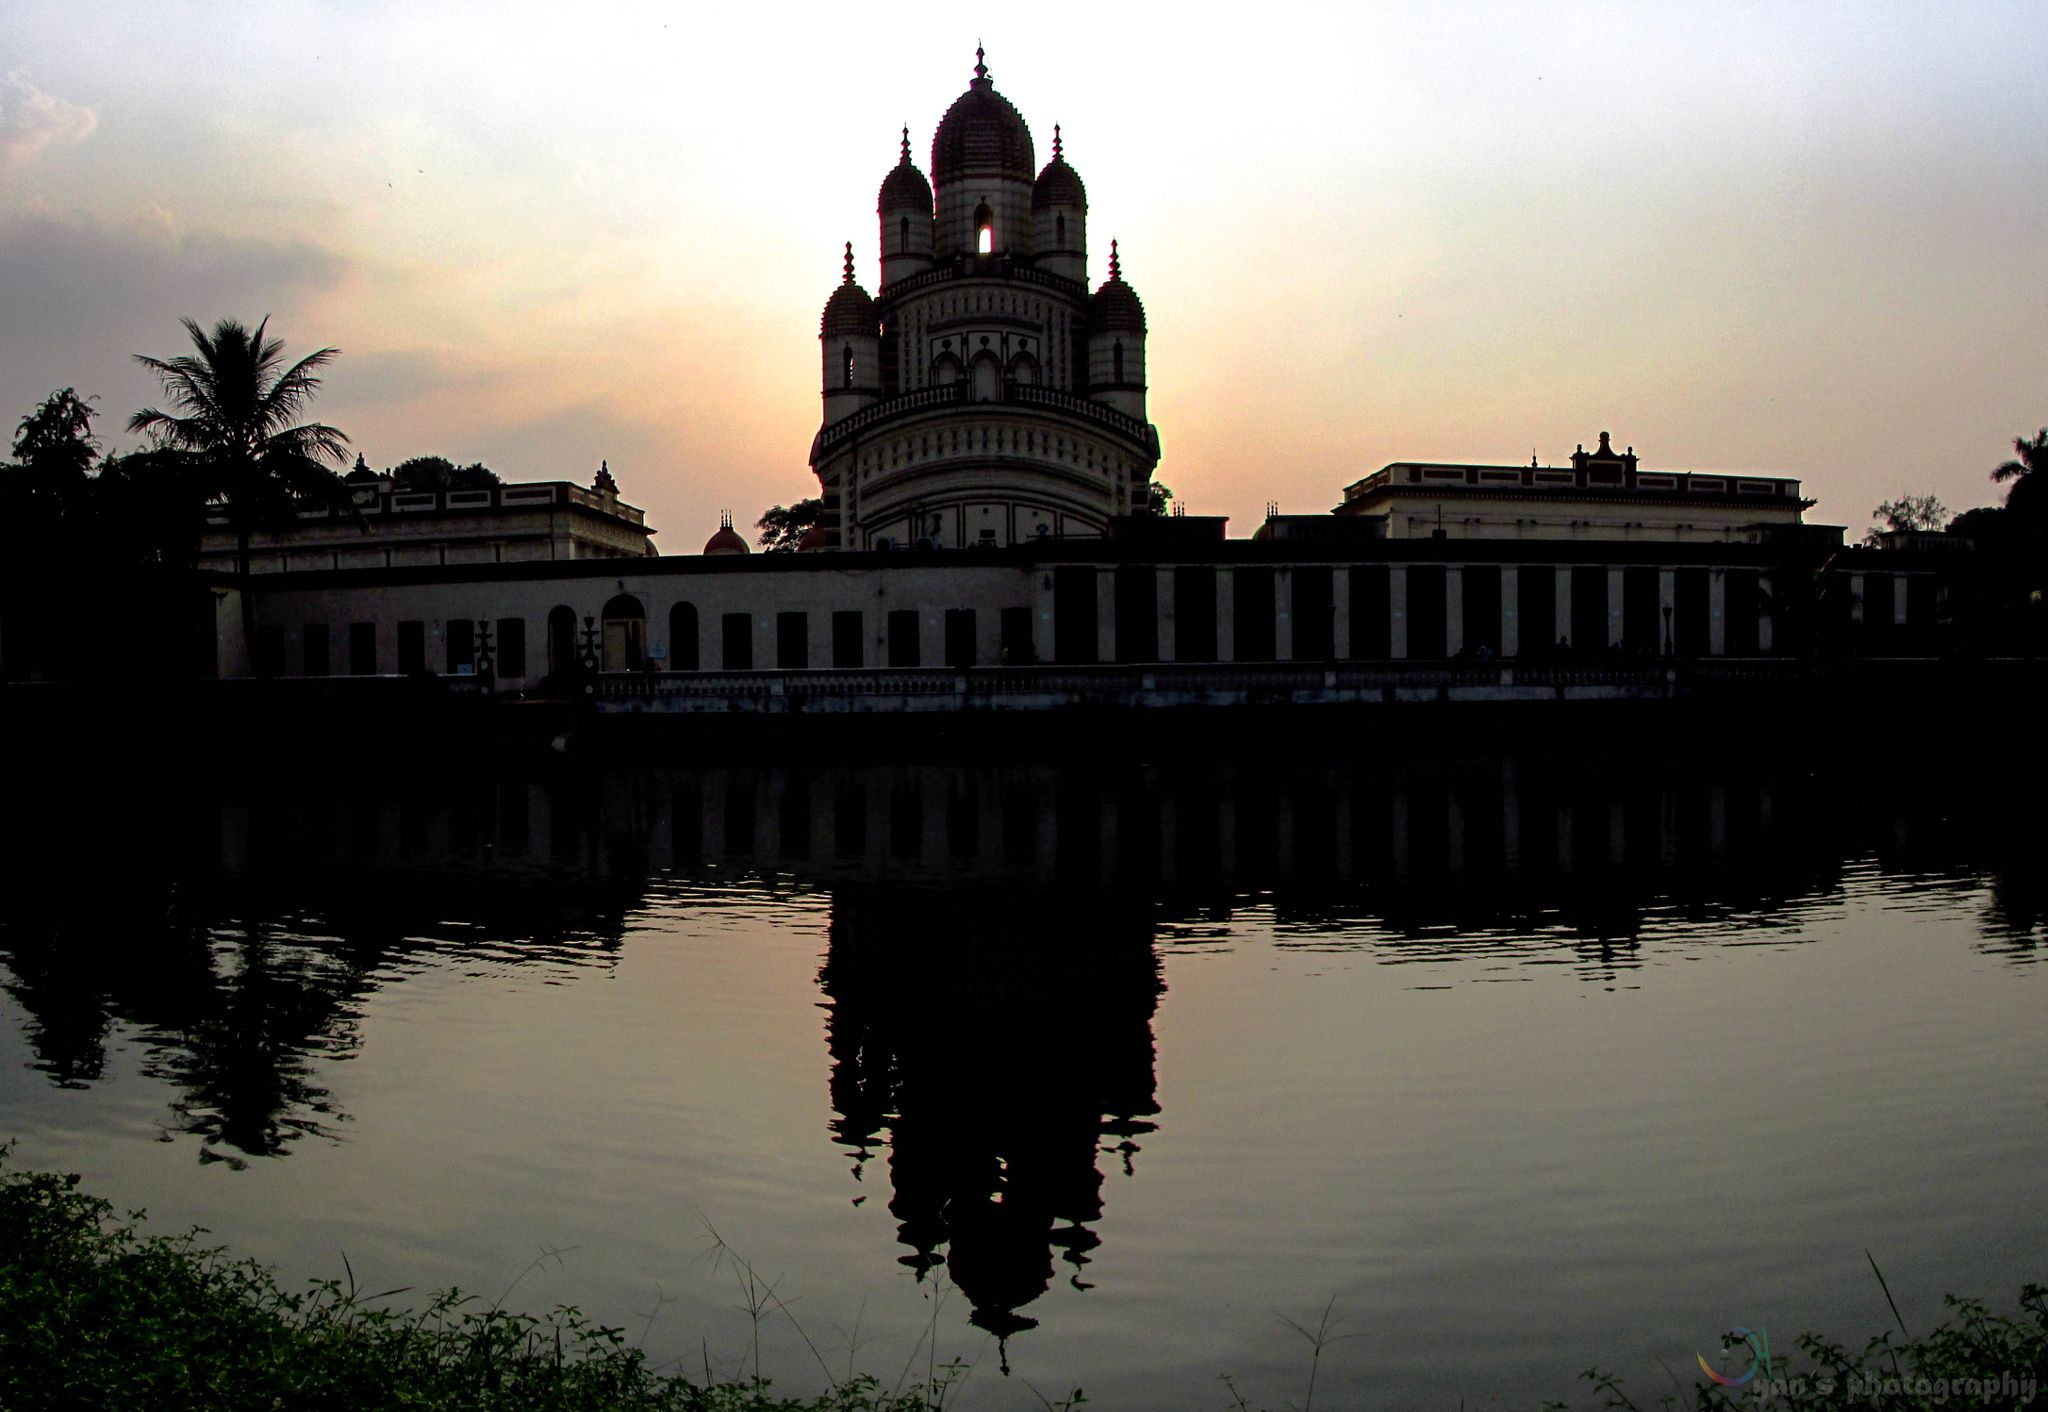 Took this shot at Dakshineswar in Kolkata.